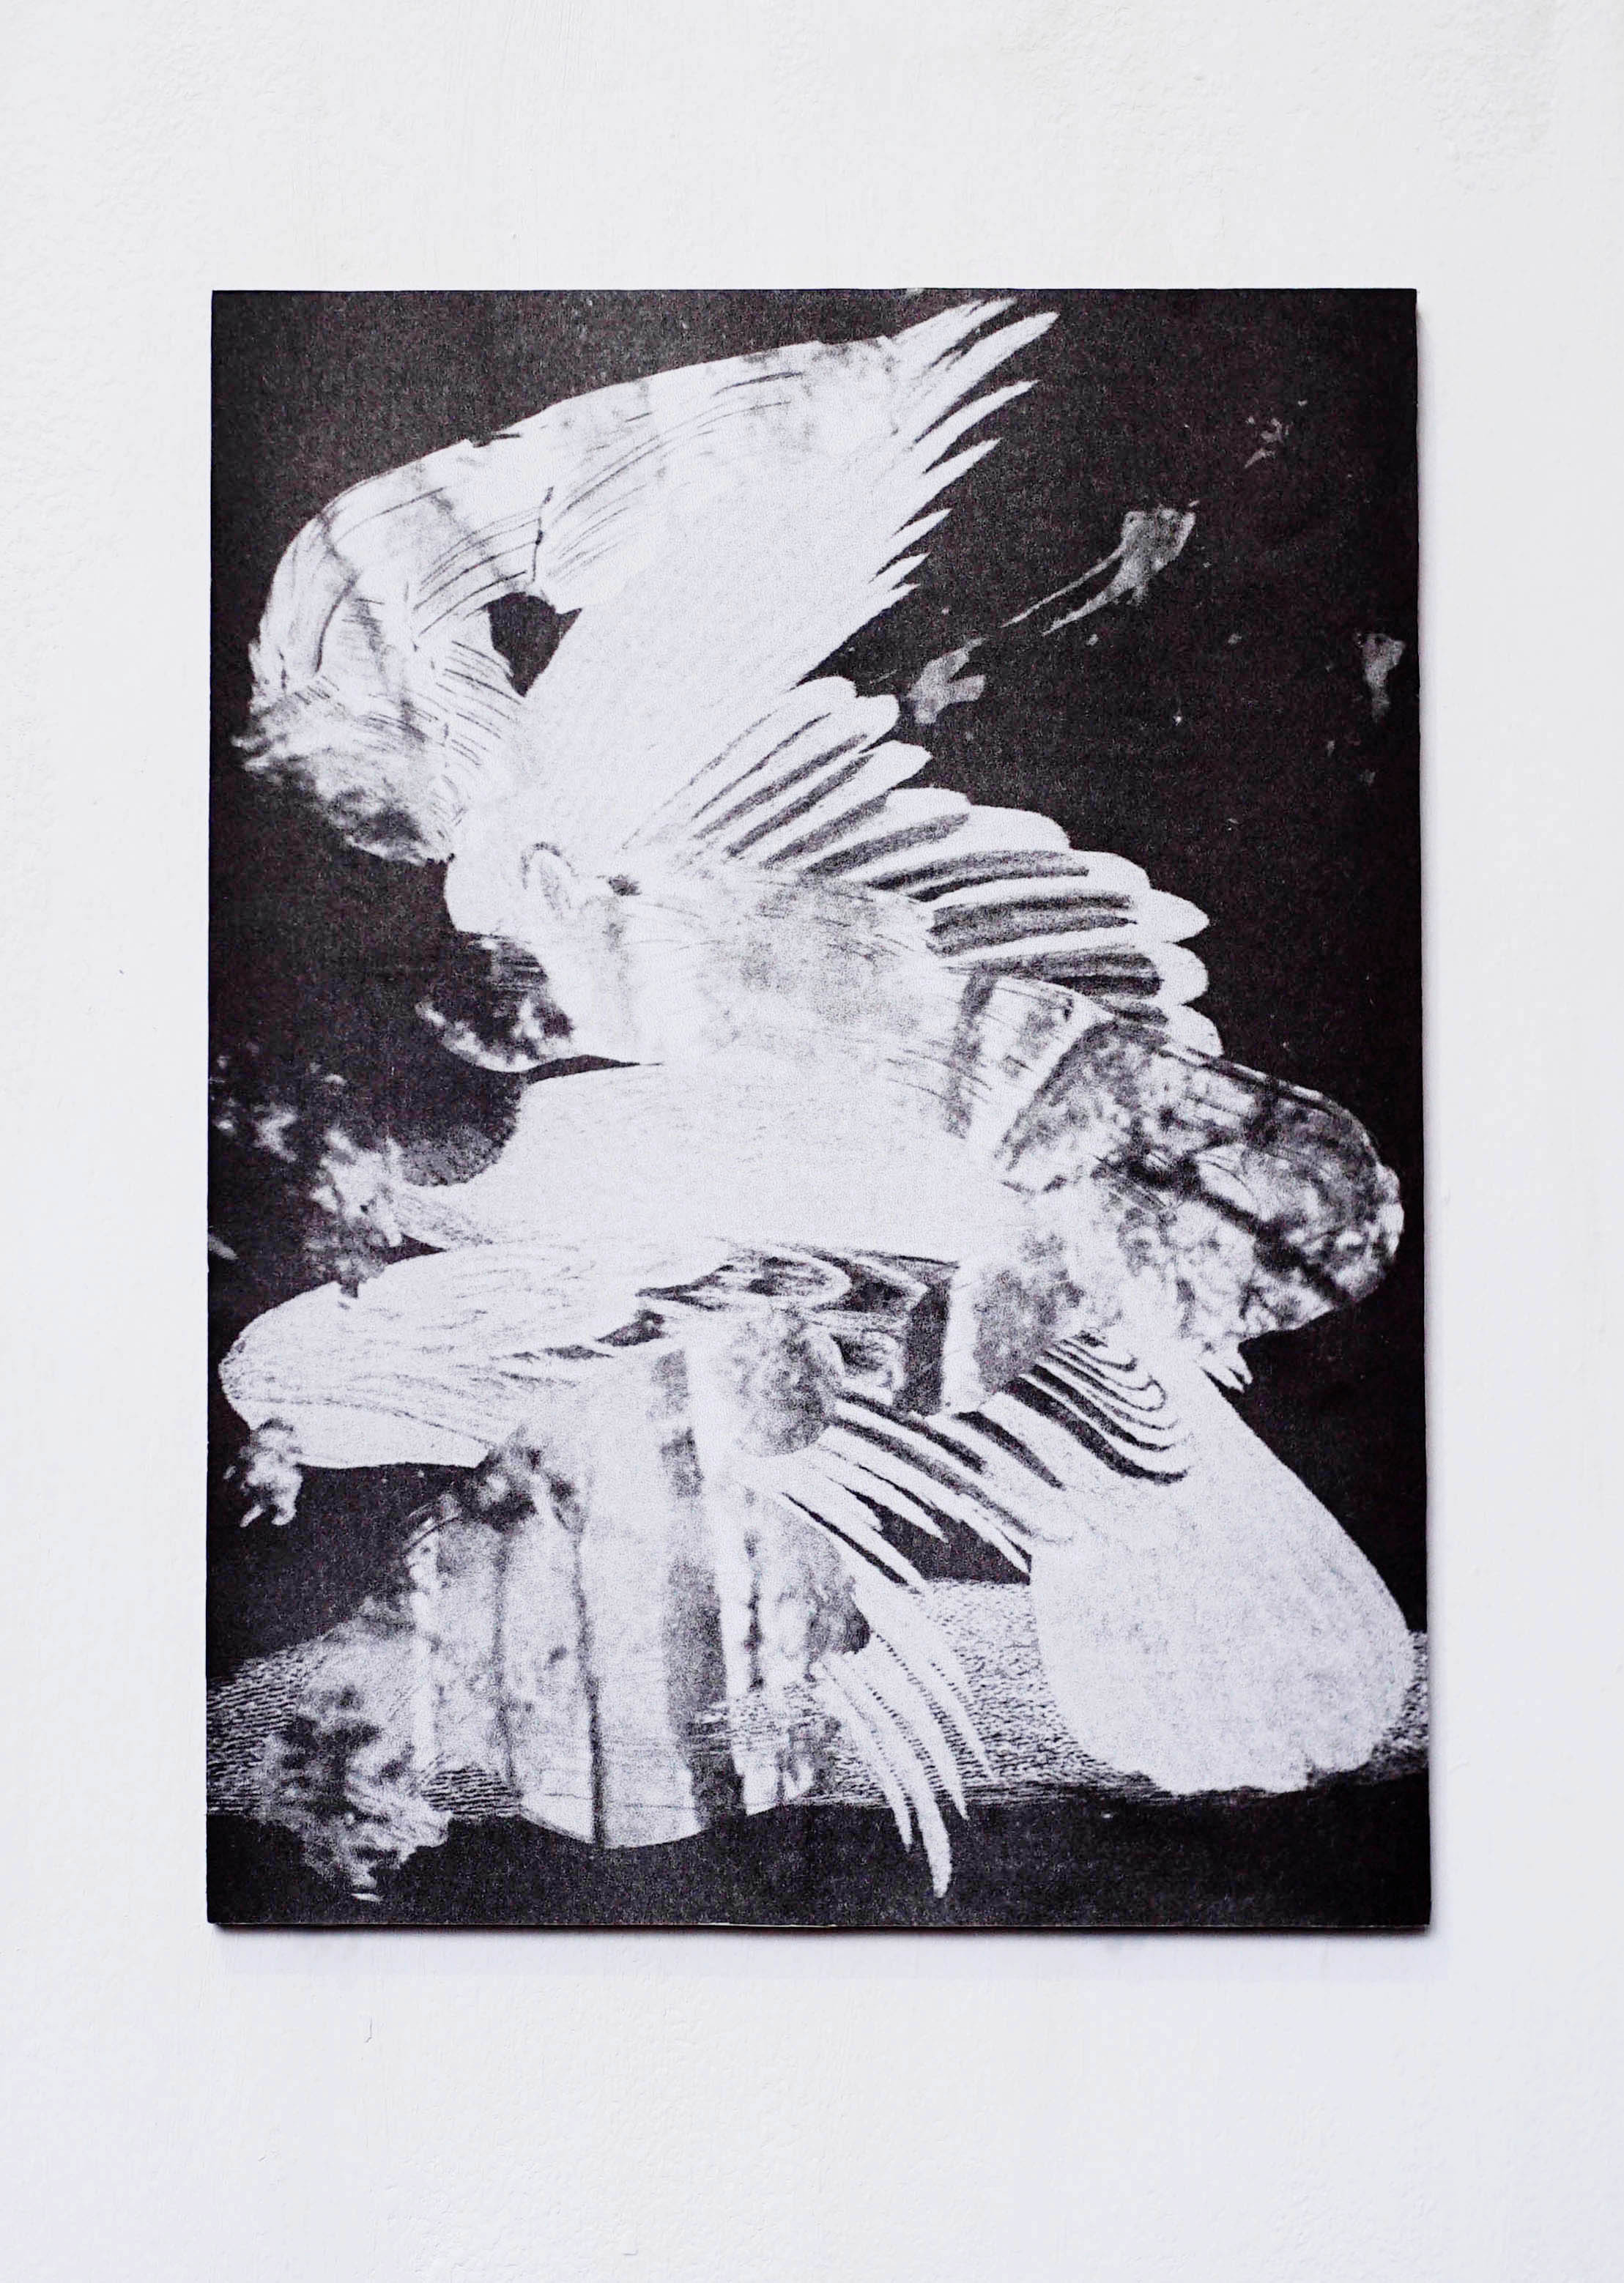 Vulture's wings,  2019, 38 x 48cm, Grain touch risograph mounted on plywood with UV varnish.